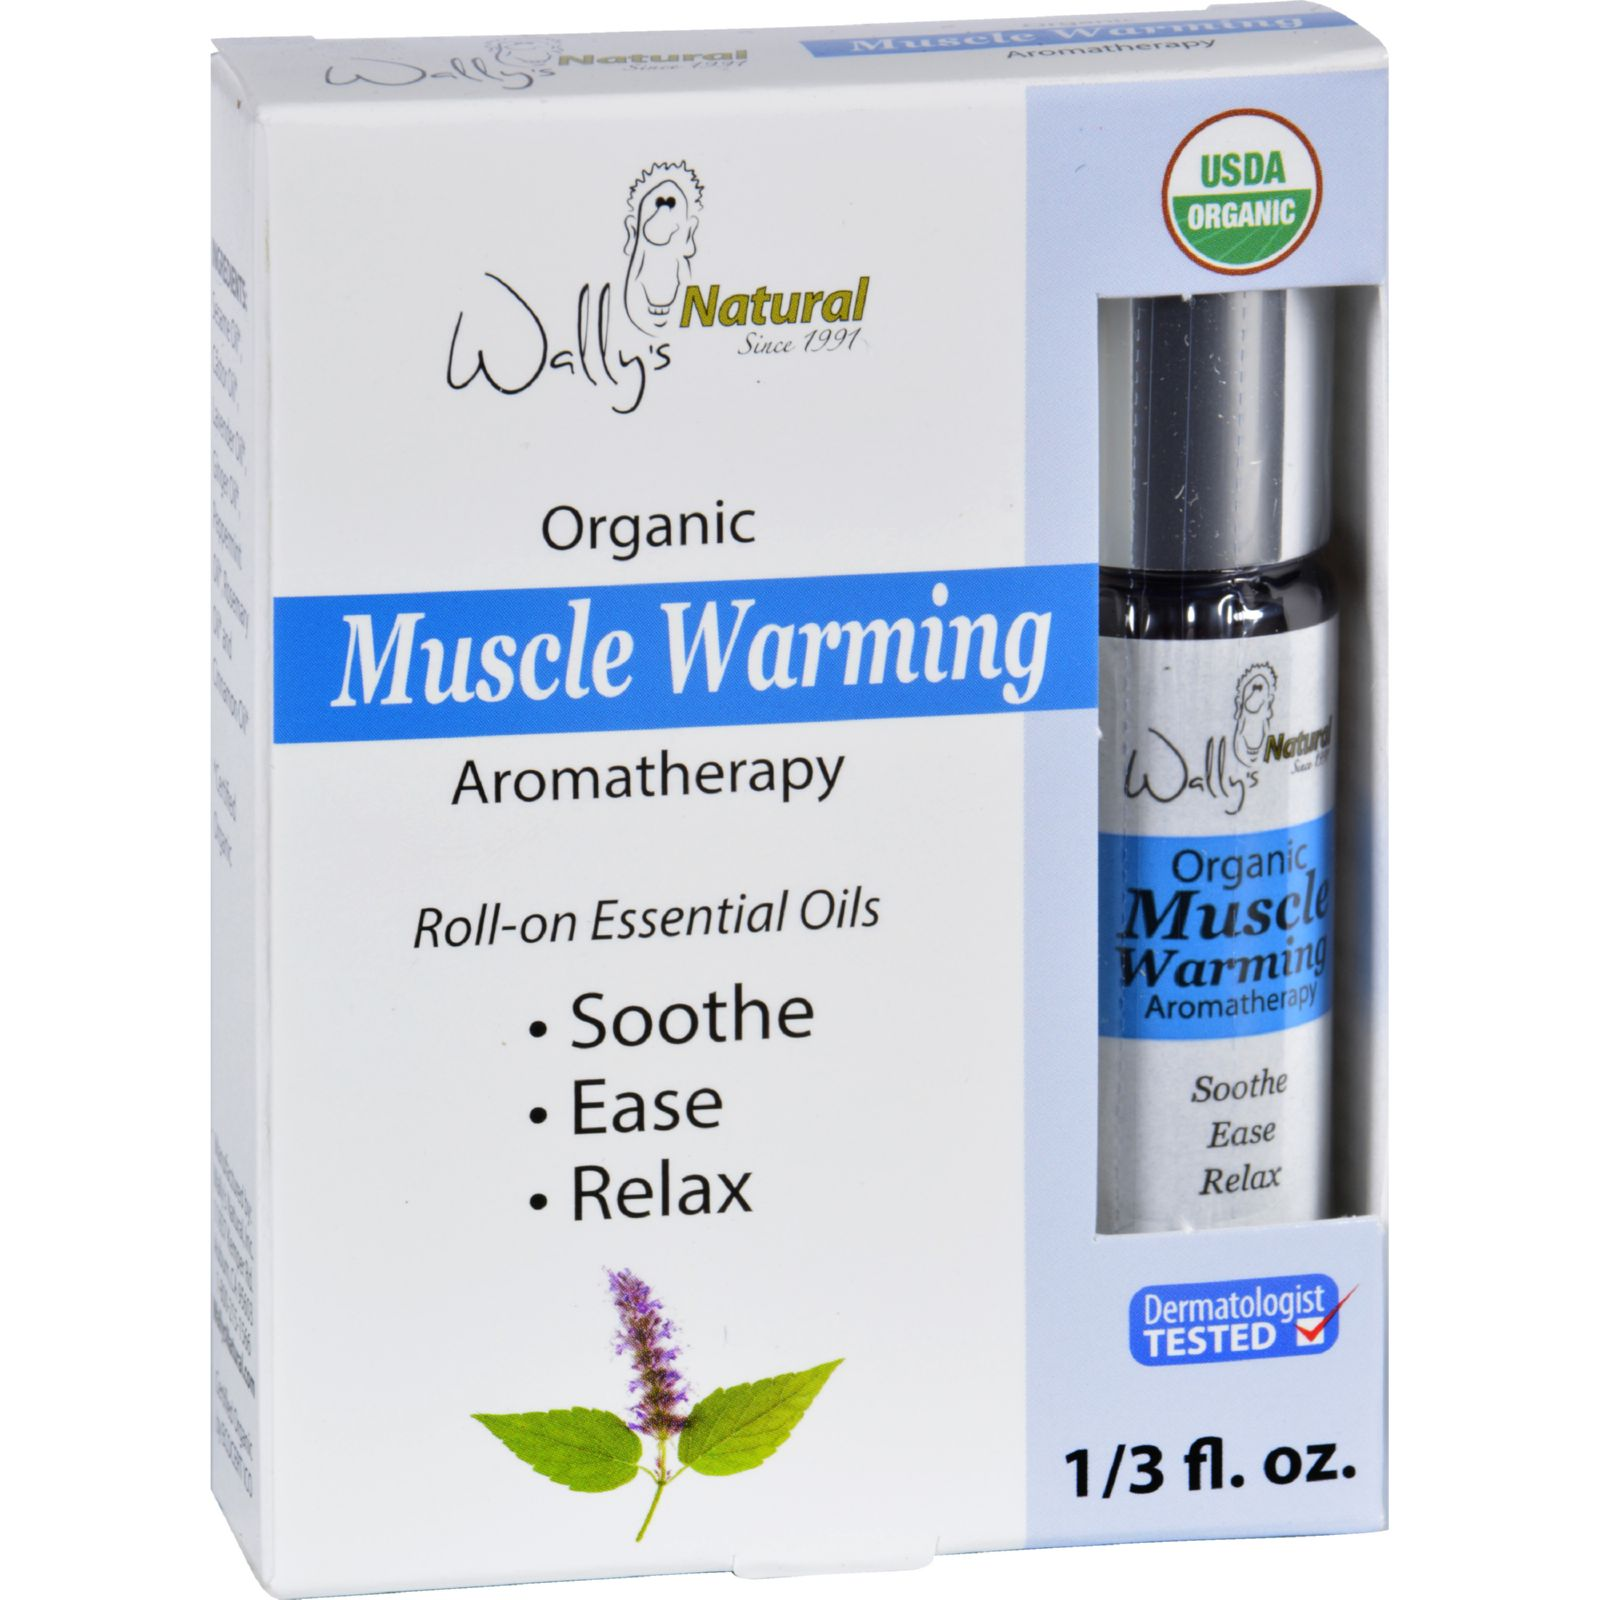 Wallys Natural Products Aromatherapy Blend  Organic  Roll On  Essential Oils  Muscle Warming  .33 oz